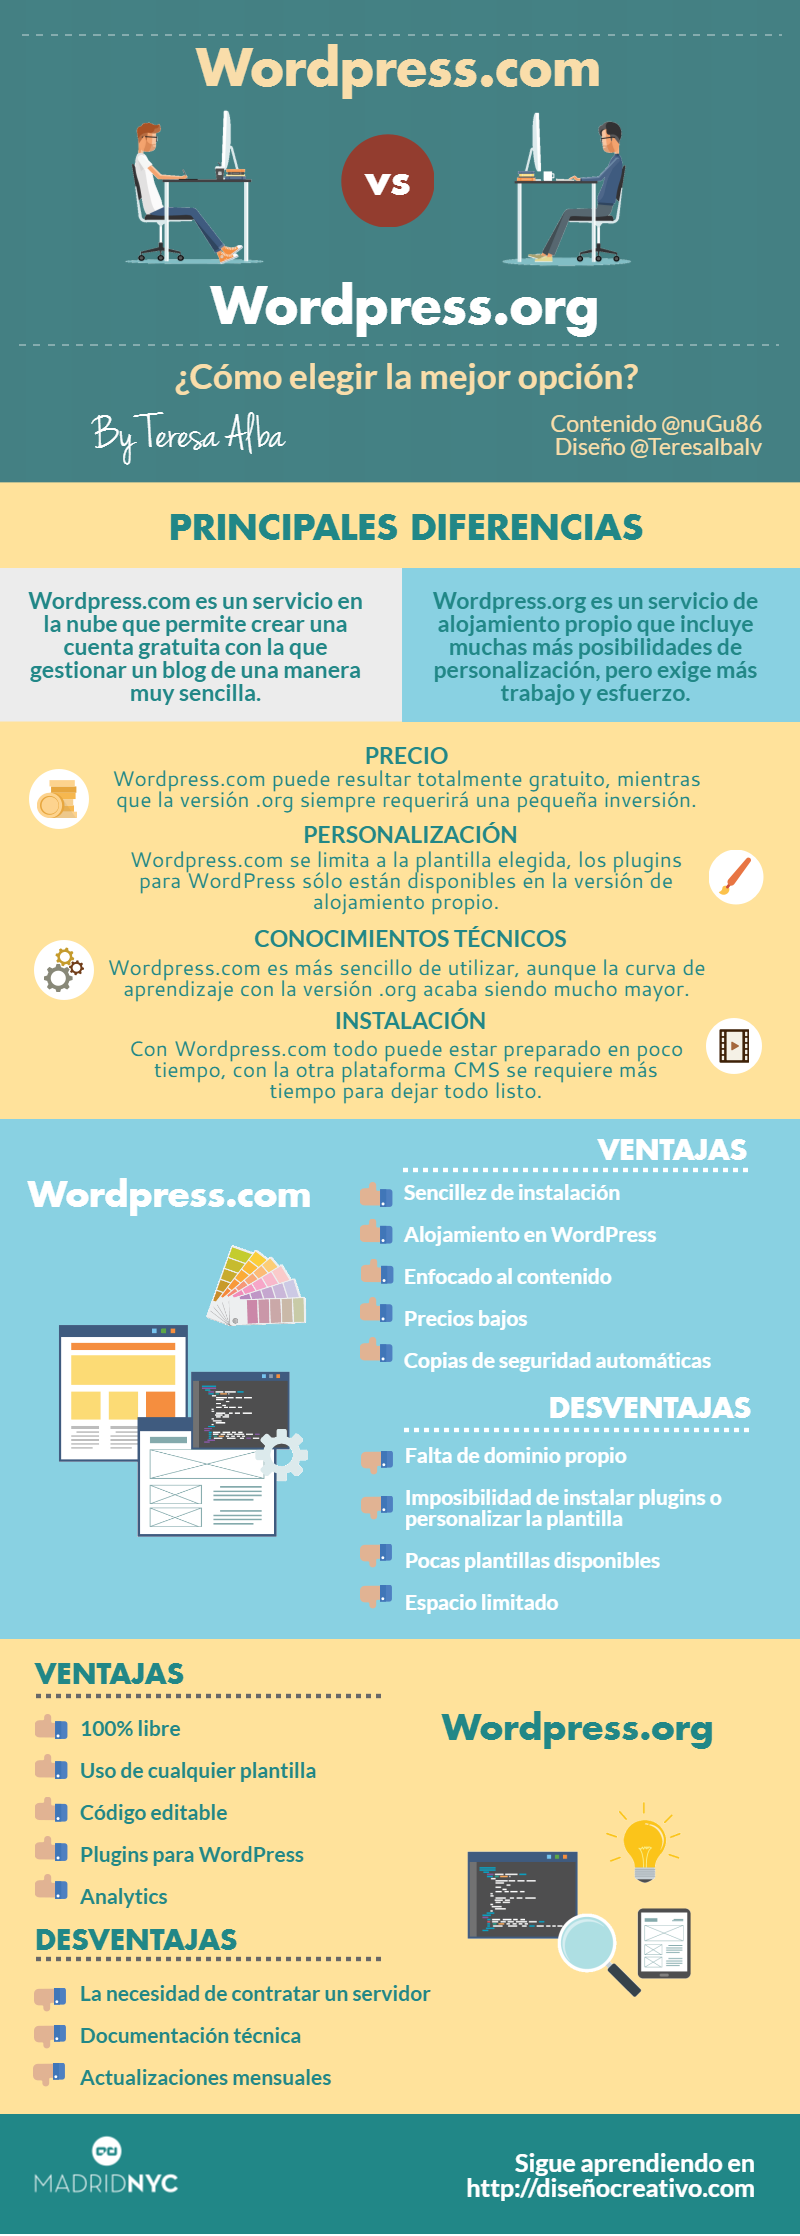 Infografía WordPress.com vs WordPress.org